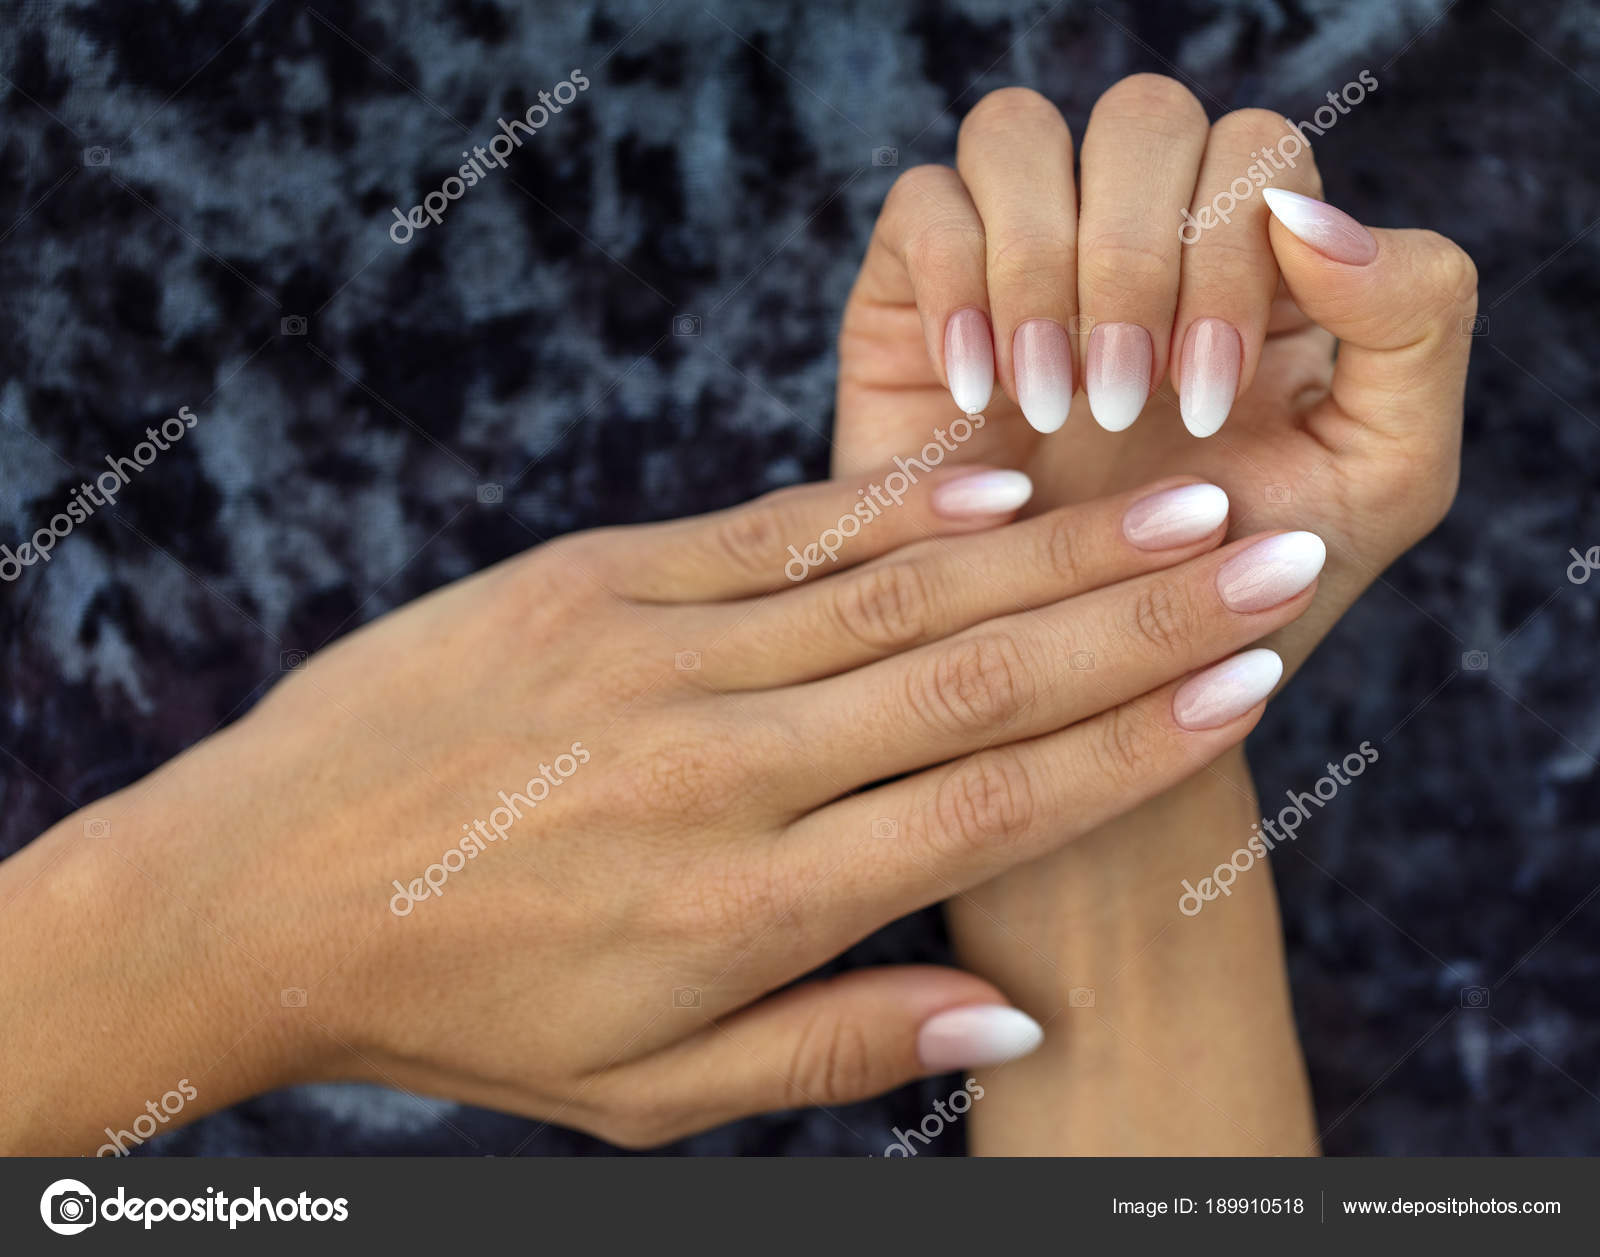 Cute Peach Nails Manicure Design French Ombre Peach And White Stock Photo C Photosergii Gmail Com 189910518